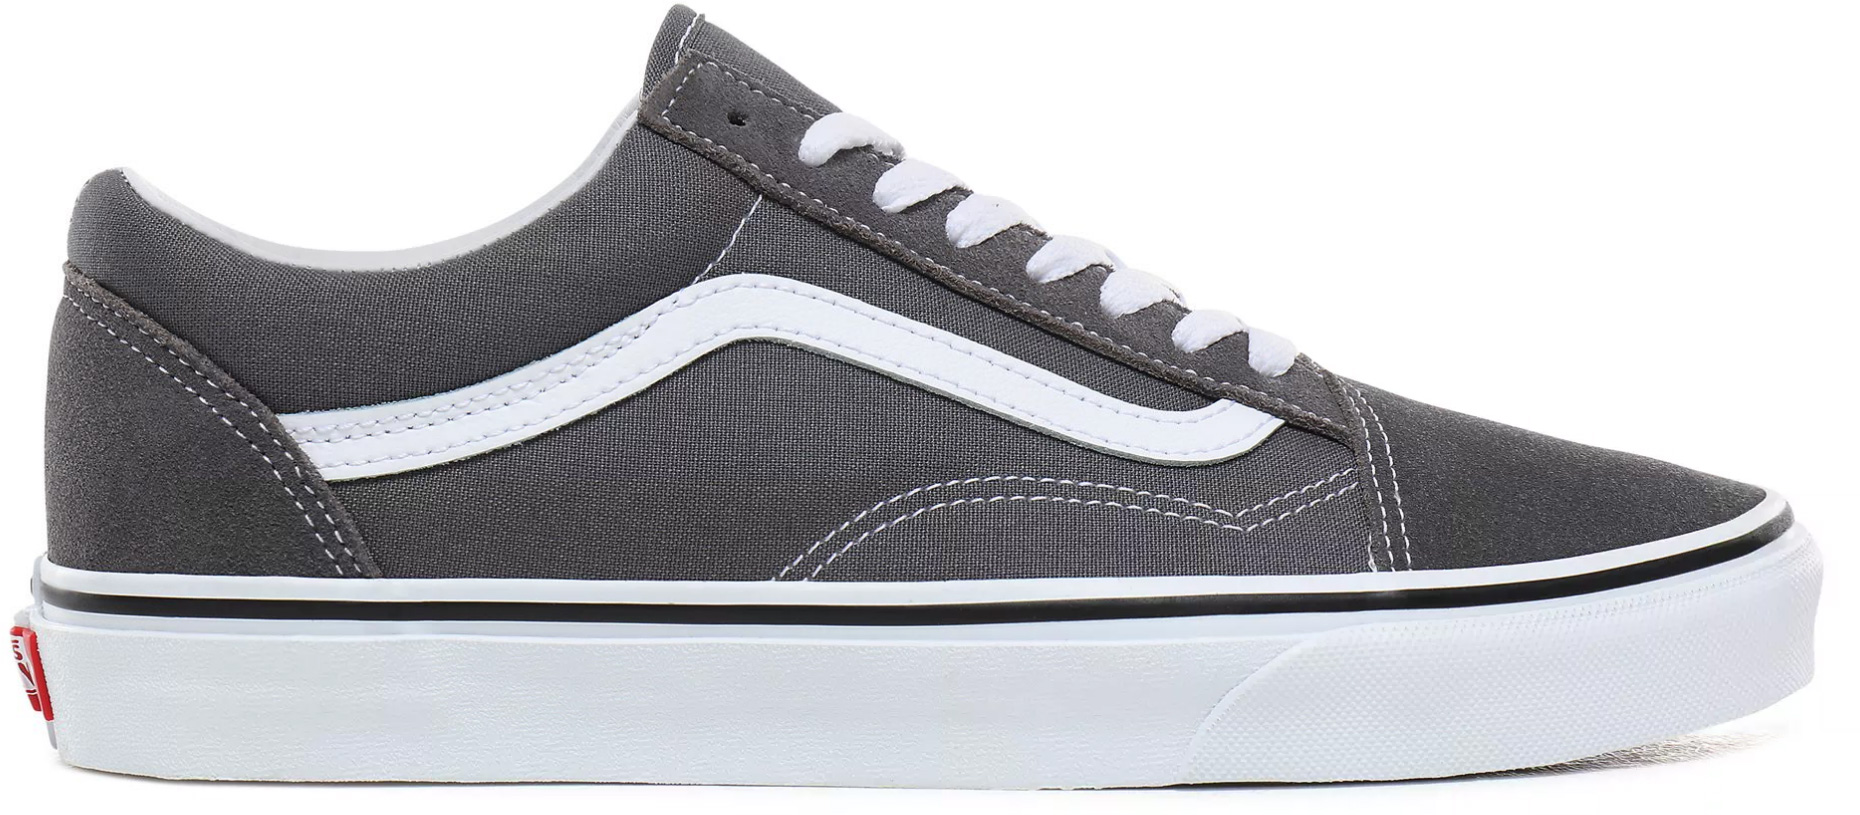 Vans, Old Skool Sneaker As one of the first shoes to bare